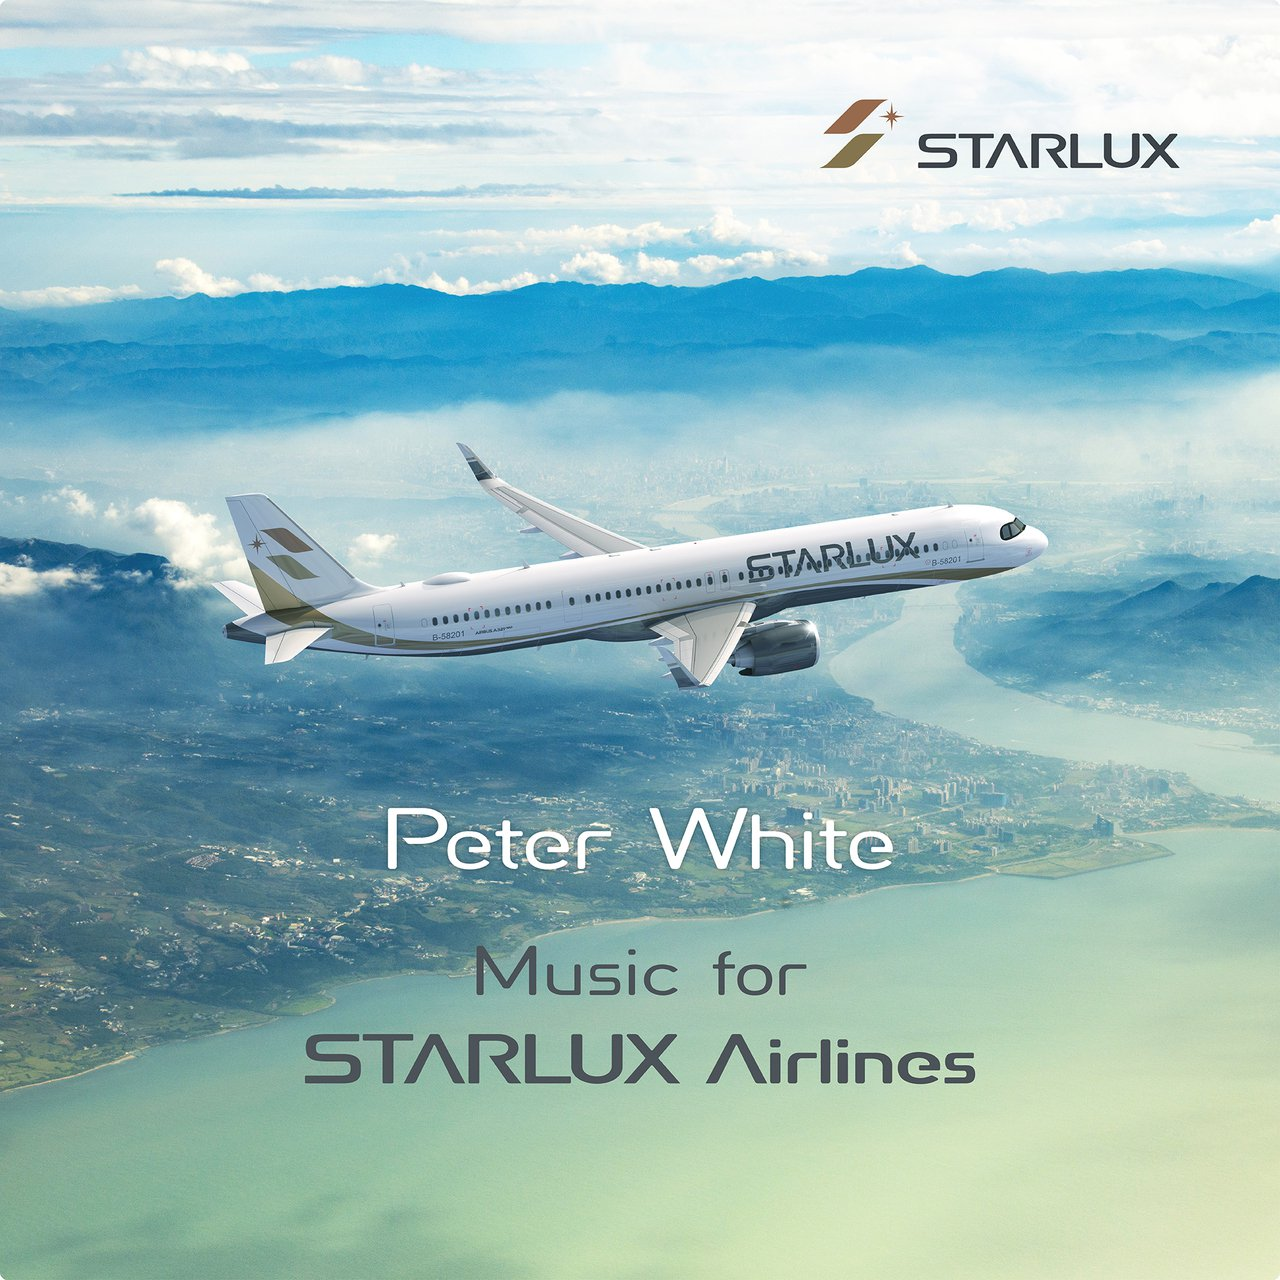 Music for STARLUX Airlines。圖/星宇航空提供